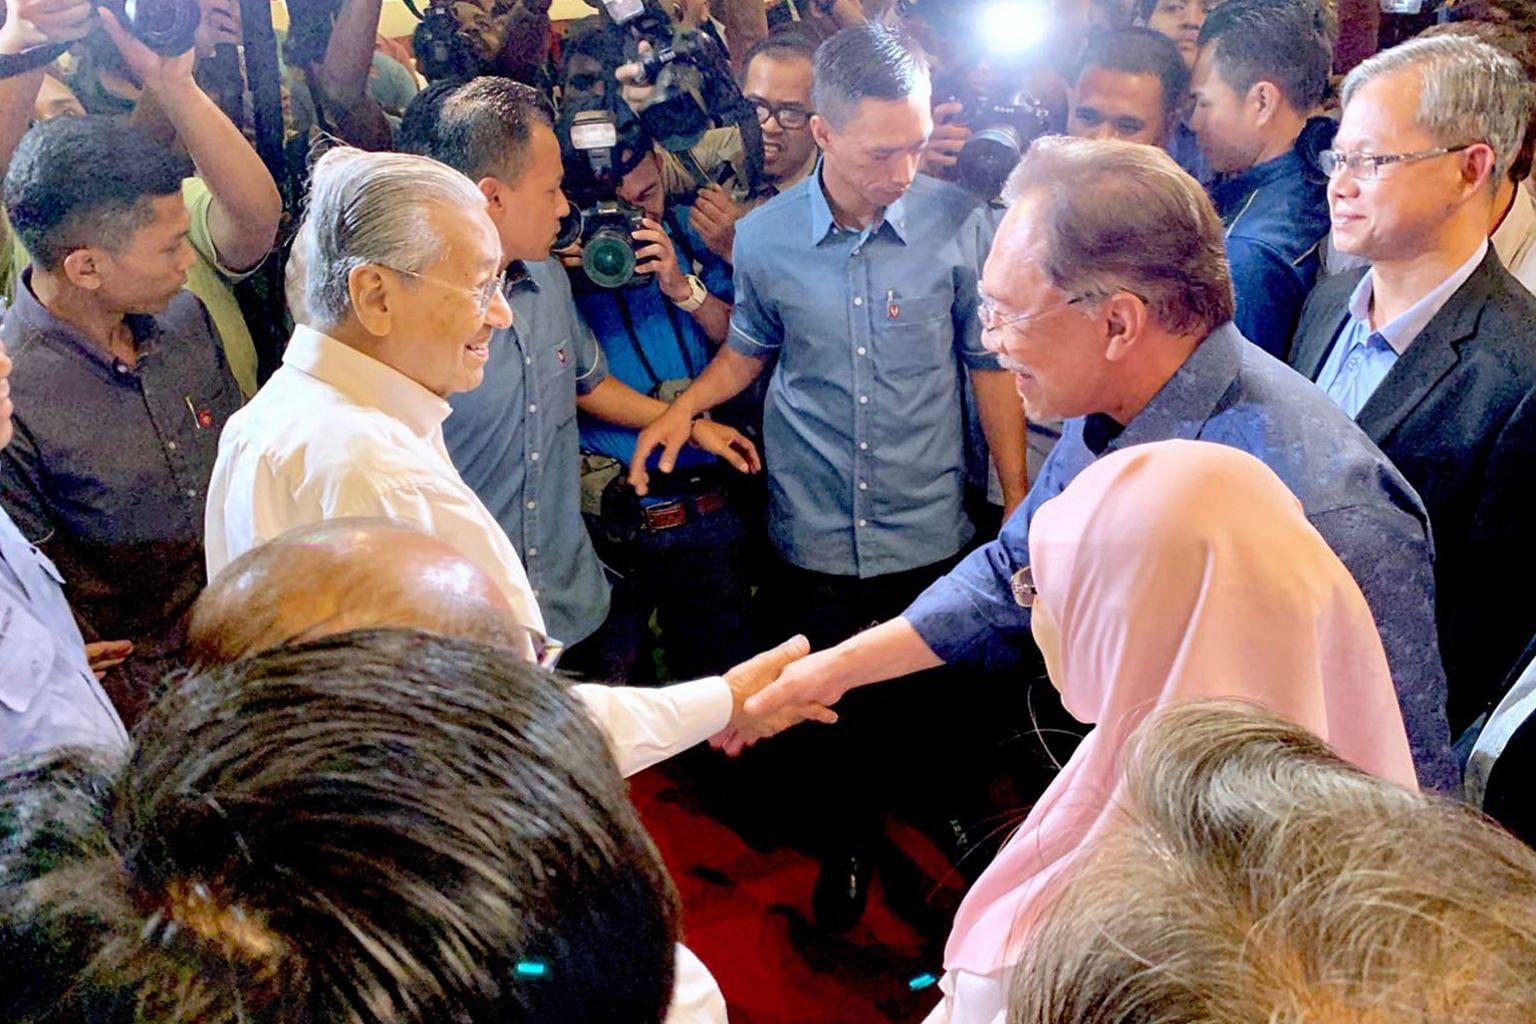 Malaysian Prime Minister Mahathir Mohamad (left) being greeted by Parti Keadilan Rakyat president Anwar Ibrahim in Port Dickson on July 19. In a recent interview, Mr Anwar's assertion that he expected to take over the top job around May next year sen